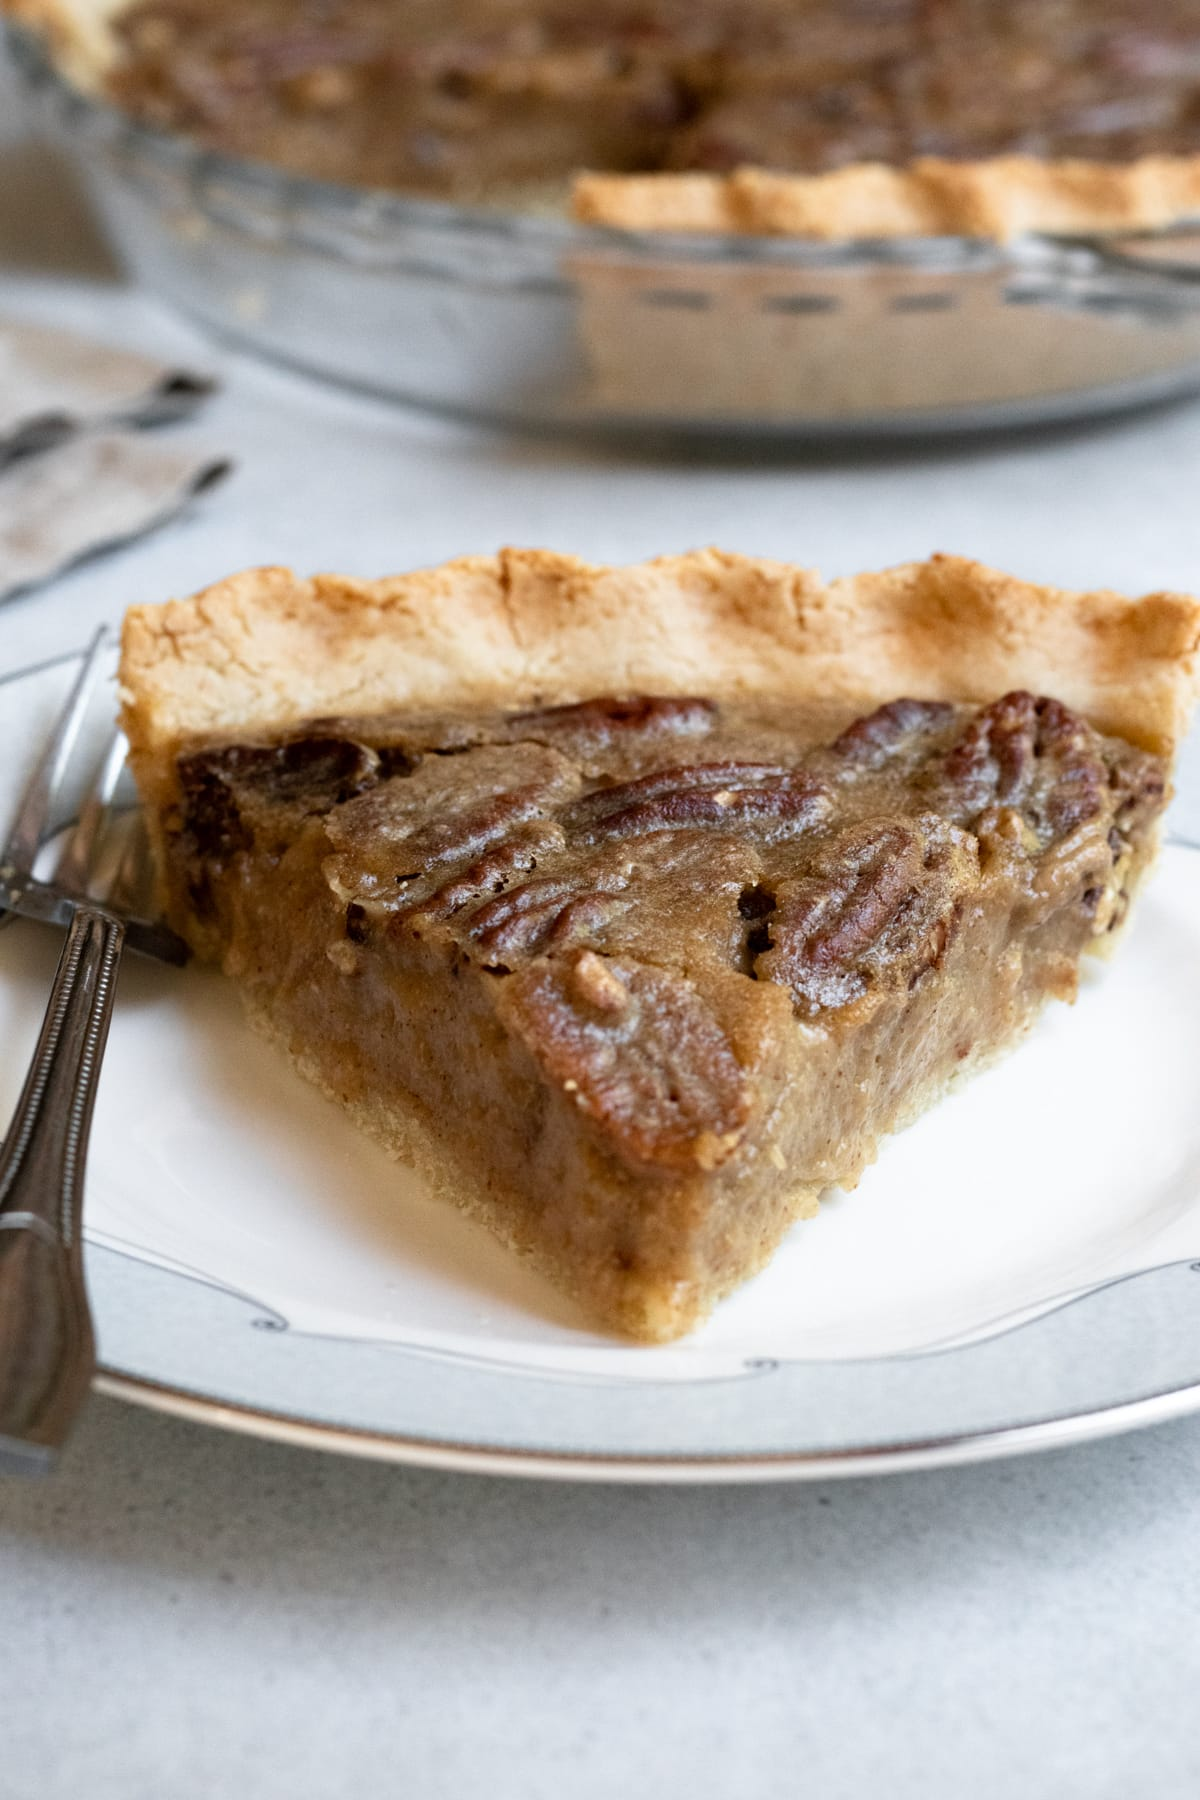 slice of maple pecan pie on a plate